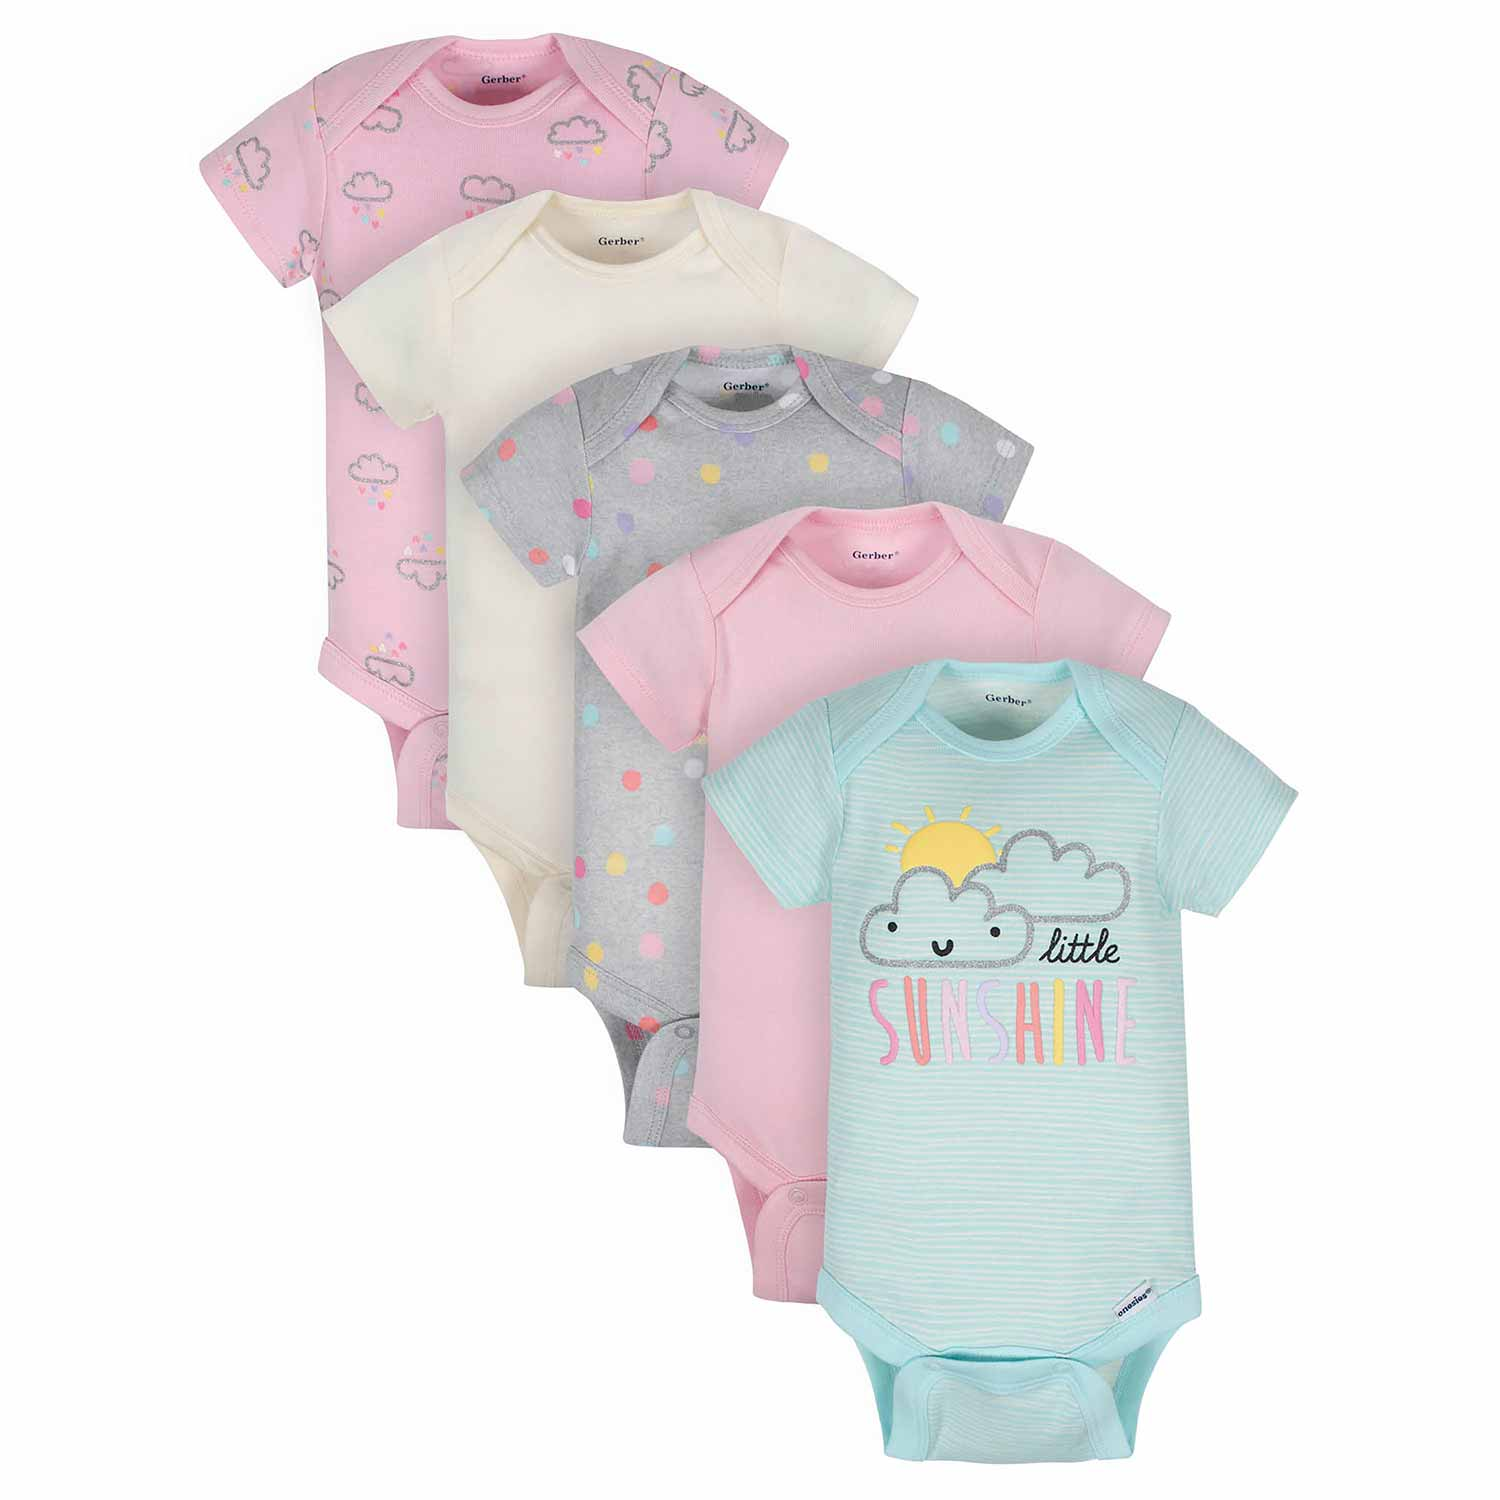 Baby Girls' 5-Pack Organic Clouds Short Sleeve Onesies® Bodysuits